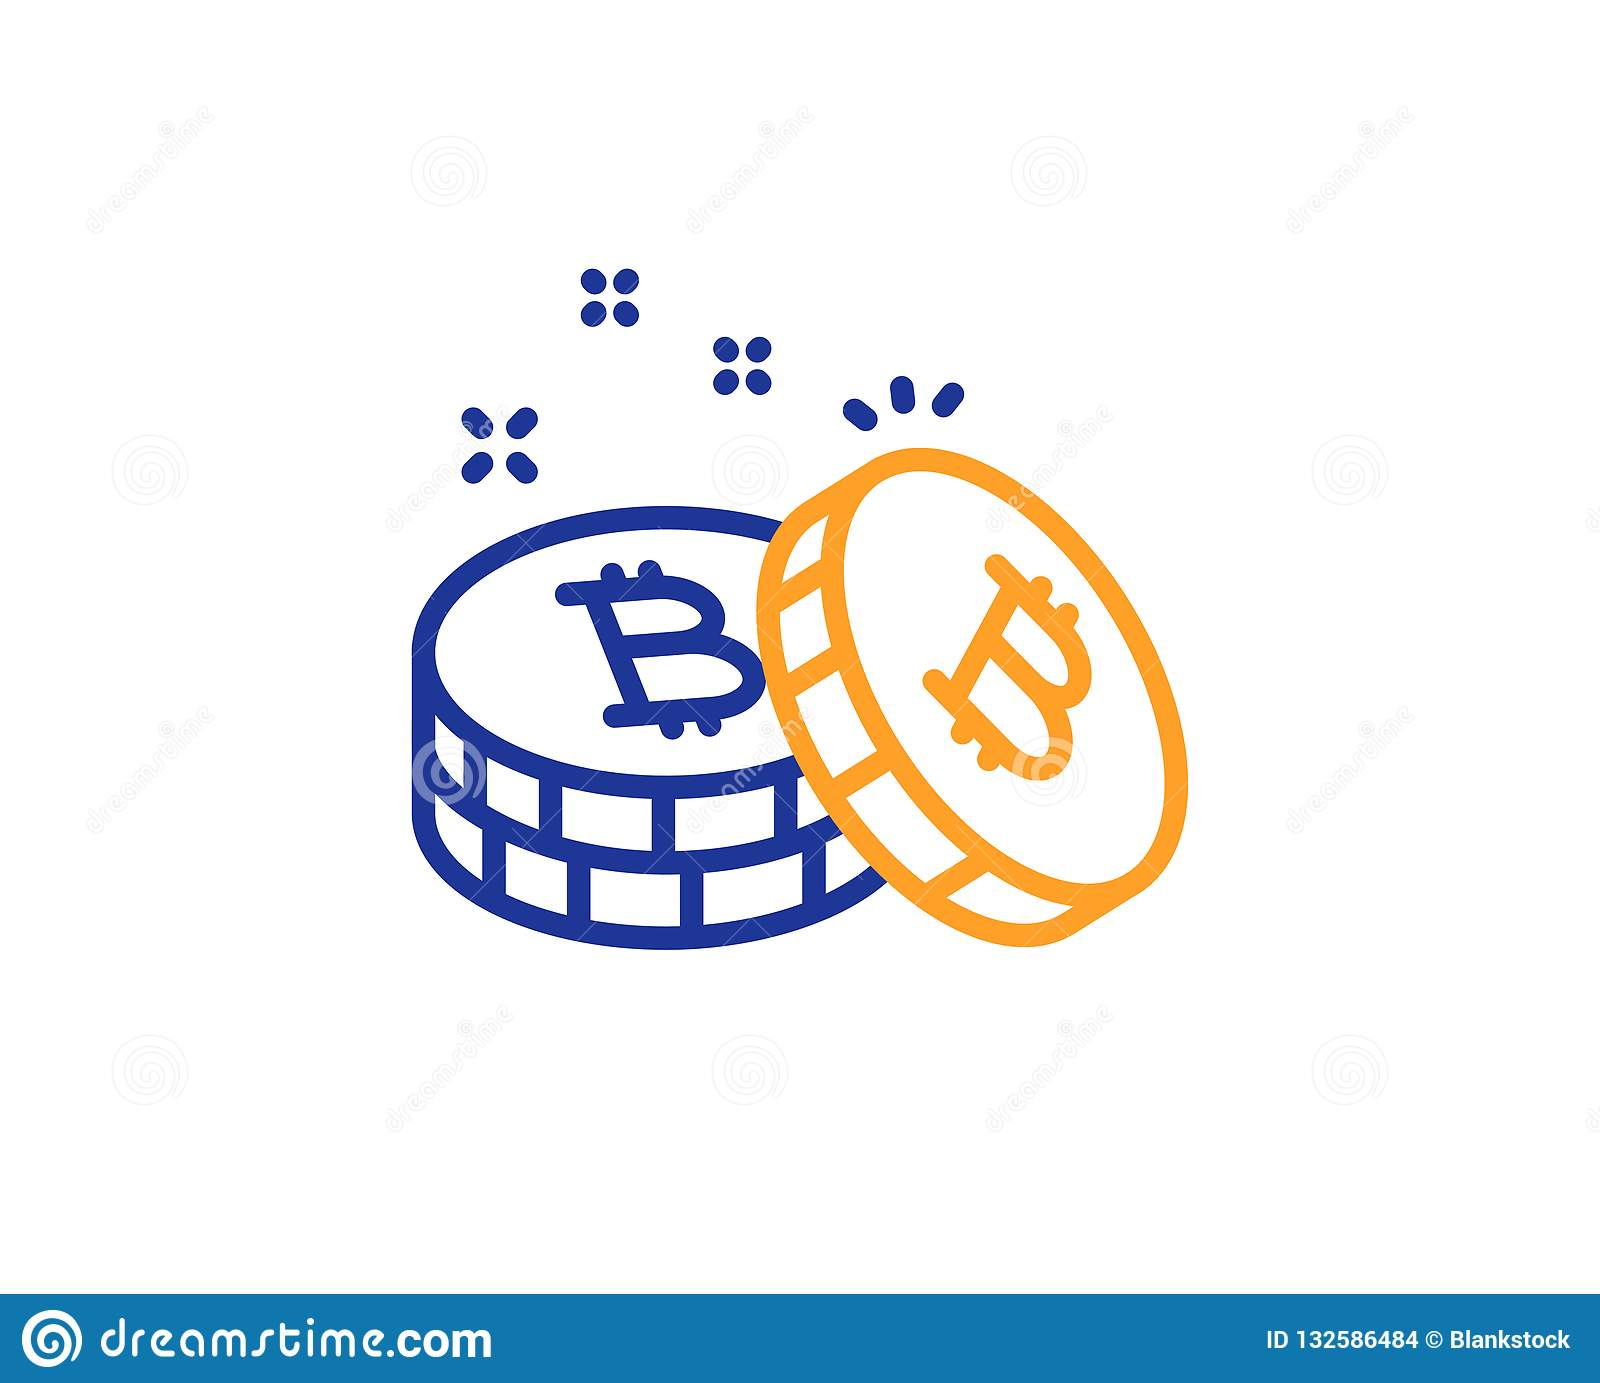 cryptocurrency money logo